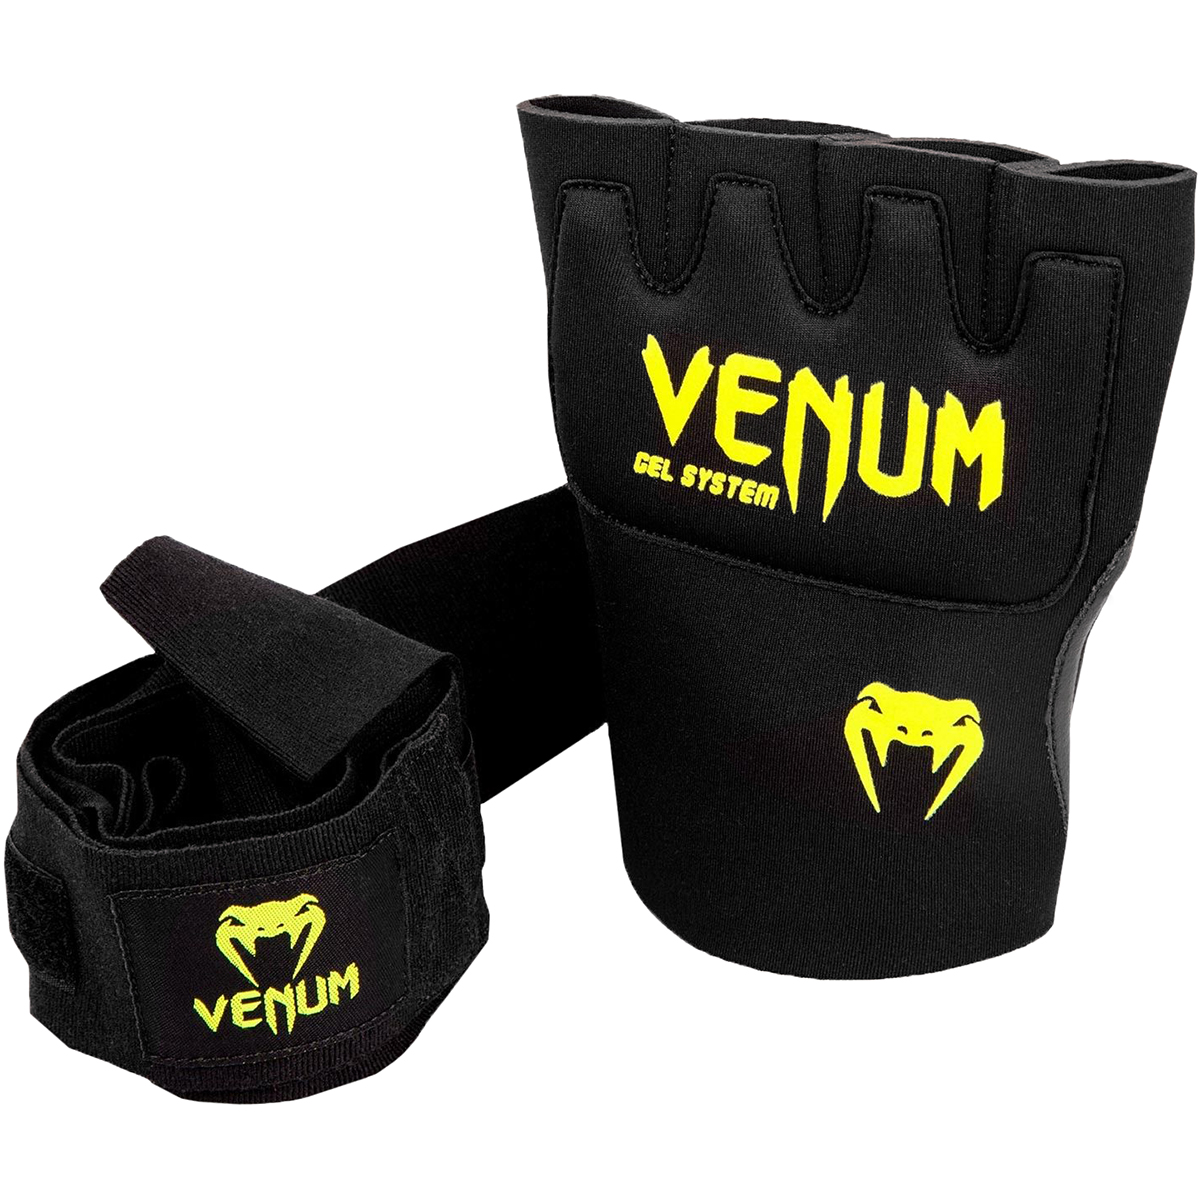 Venum-Kontact-Protective-Shock-Absorbing-Gel-MMA-Glove-Wraps thumbnail 36